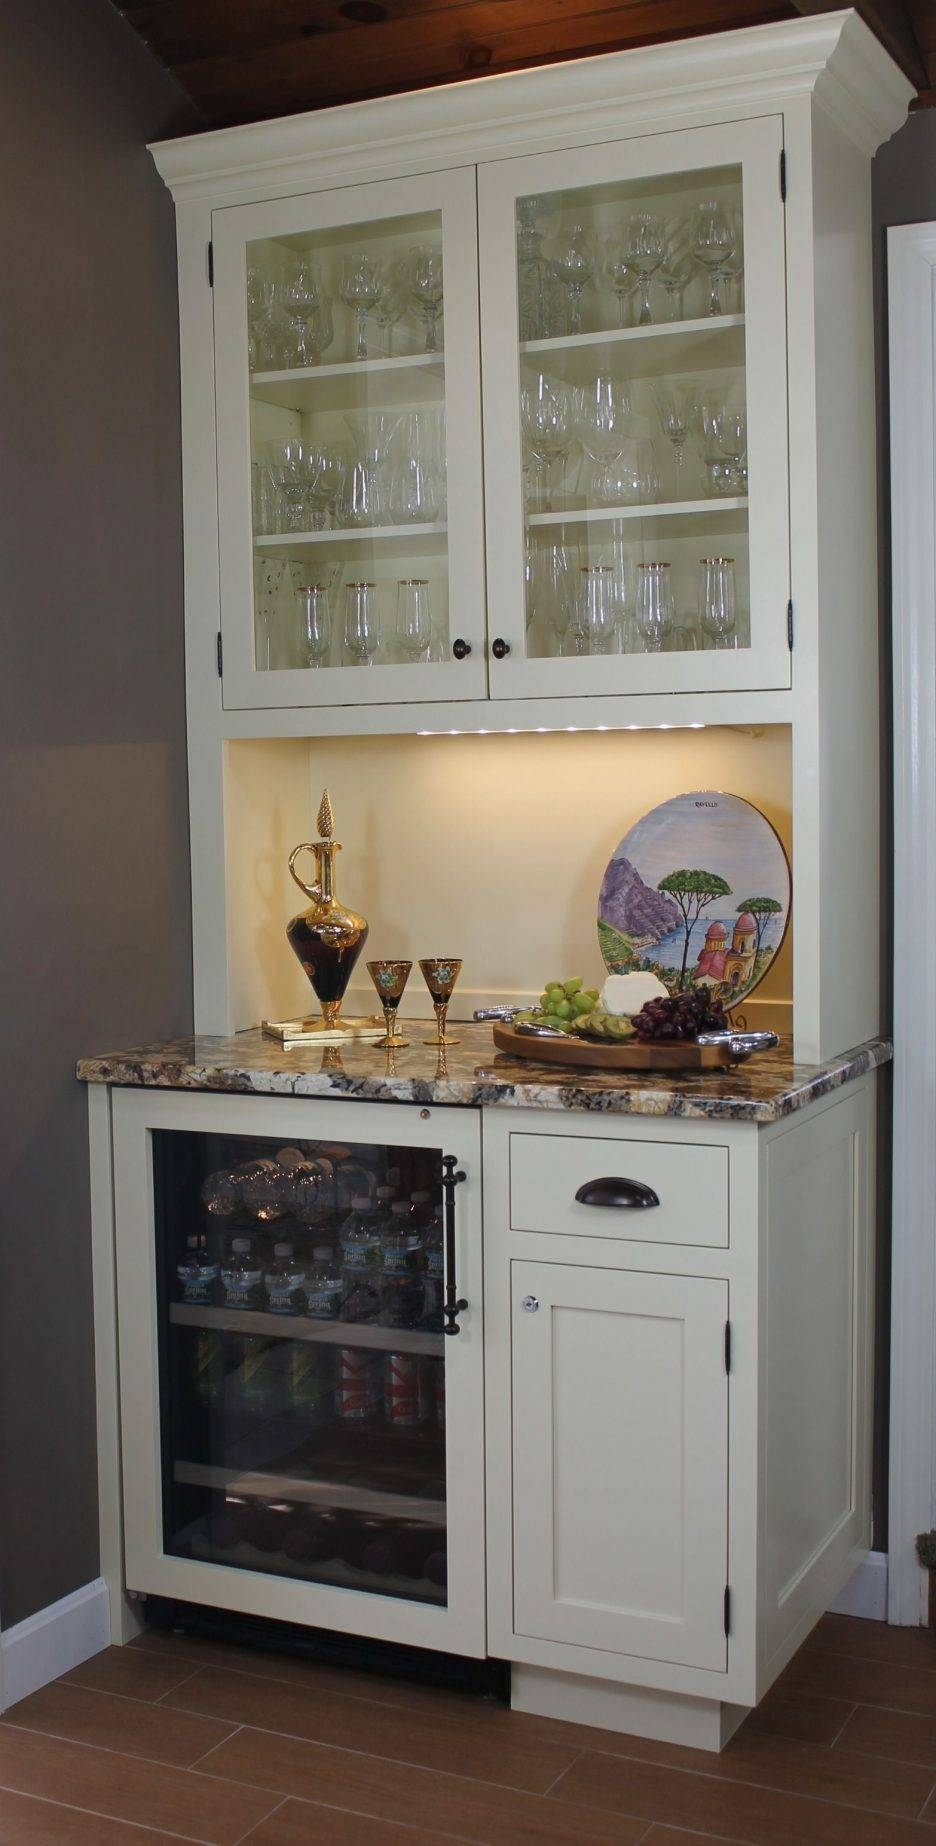 Skinny Sideboard Kitchen Sideboards And Buffets Small Kitchen Pertaining To Kitchen Sideboards (View 12 of 15)